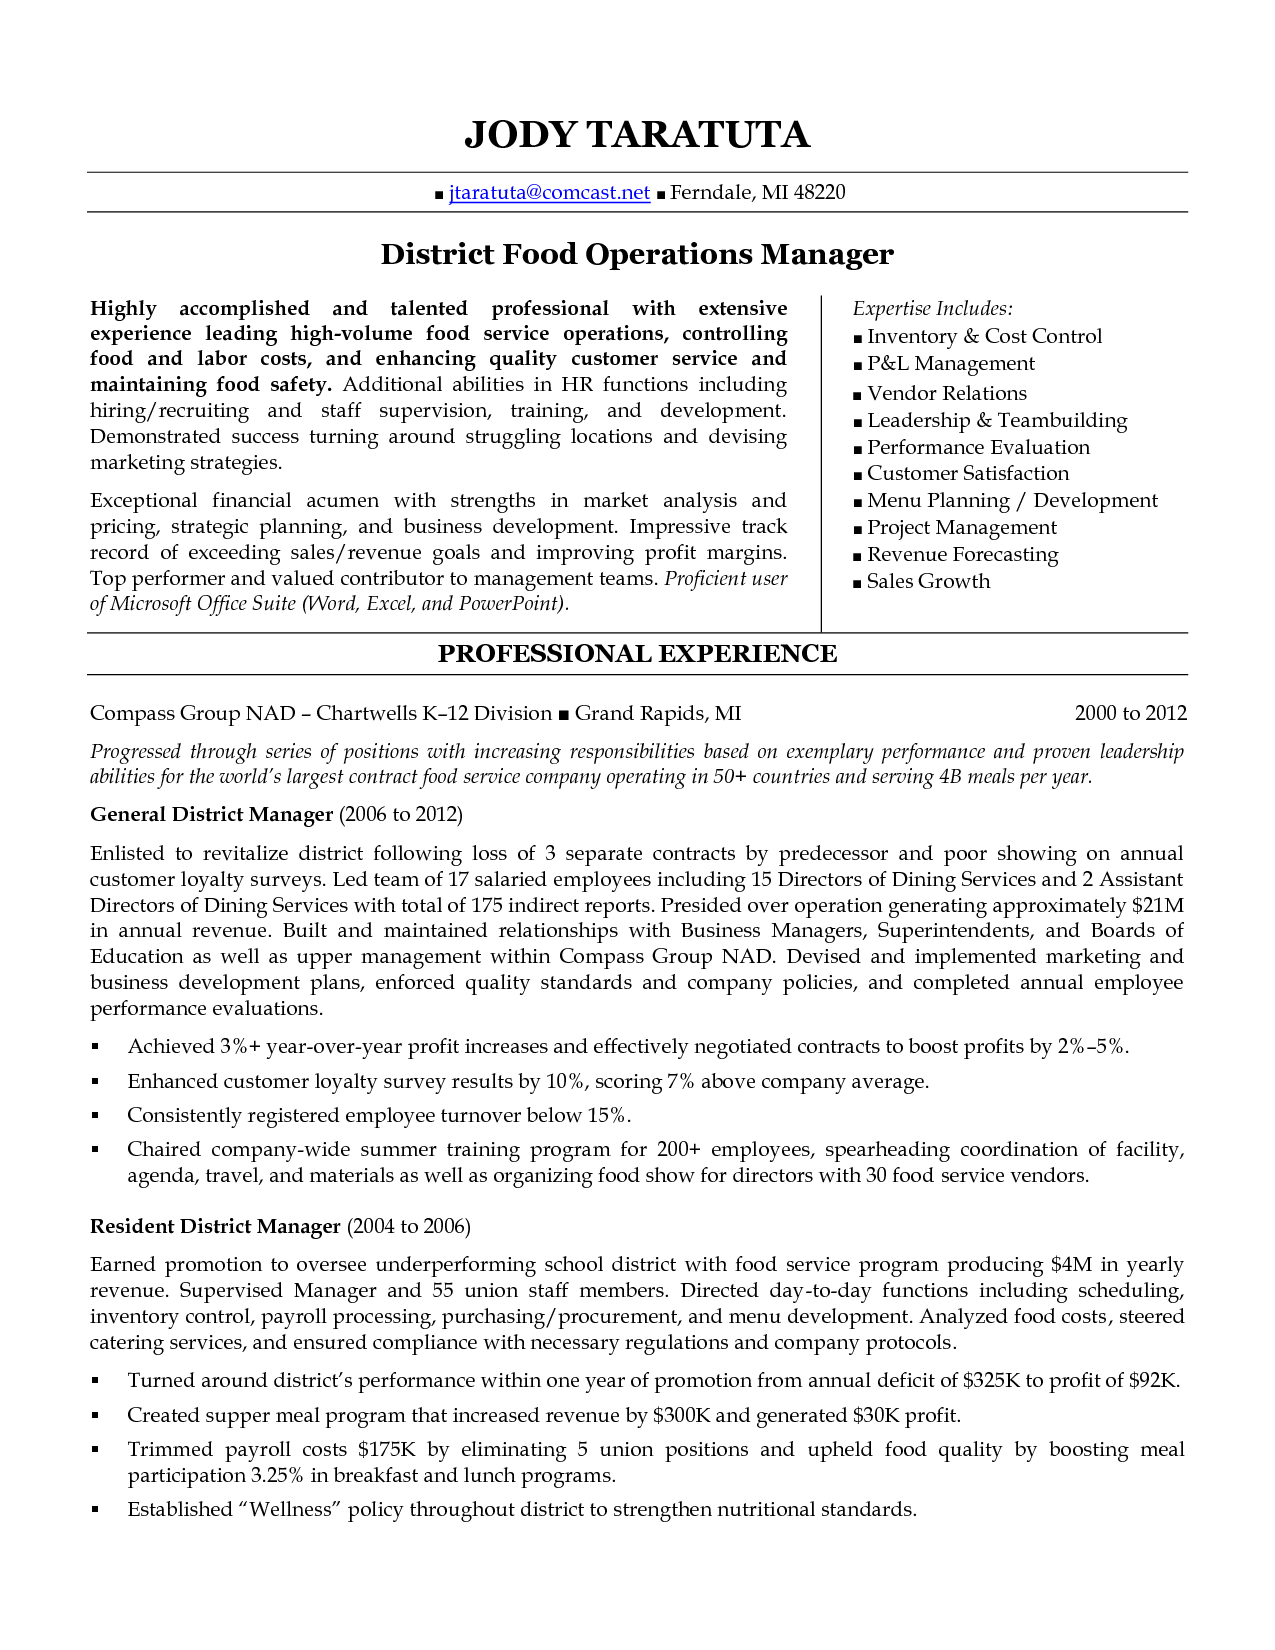 Food Service Manager Resume 5 sample of resume templates food service Customer Service Manager Resume Sample Best Photos Of Call Center Customer Service Manager Resume Sample Best Photos Of Call Center